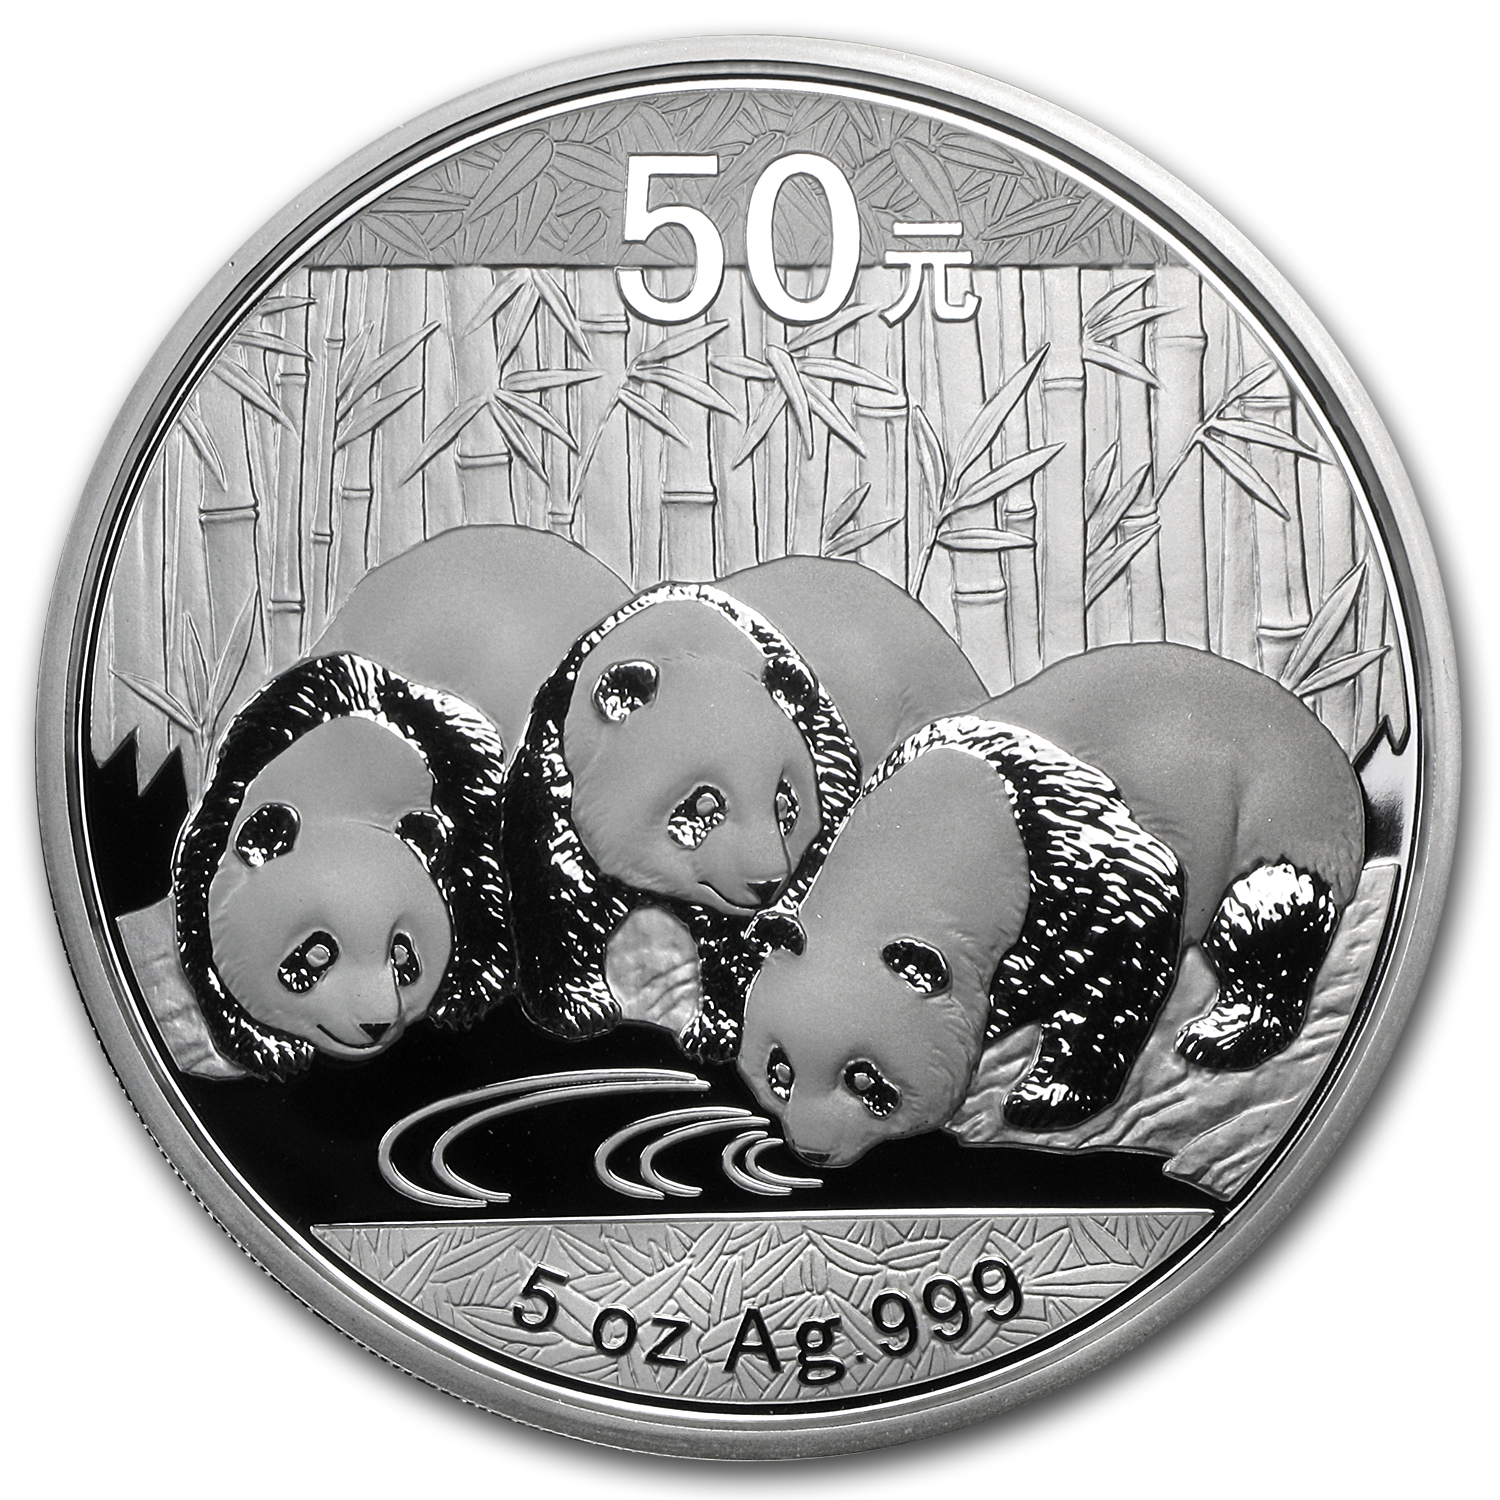 2013 China 5 oz Silver Panda Proof (w/Box & COA)